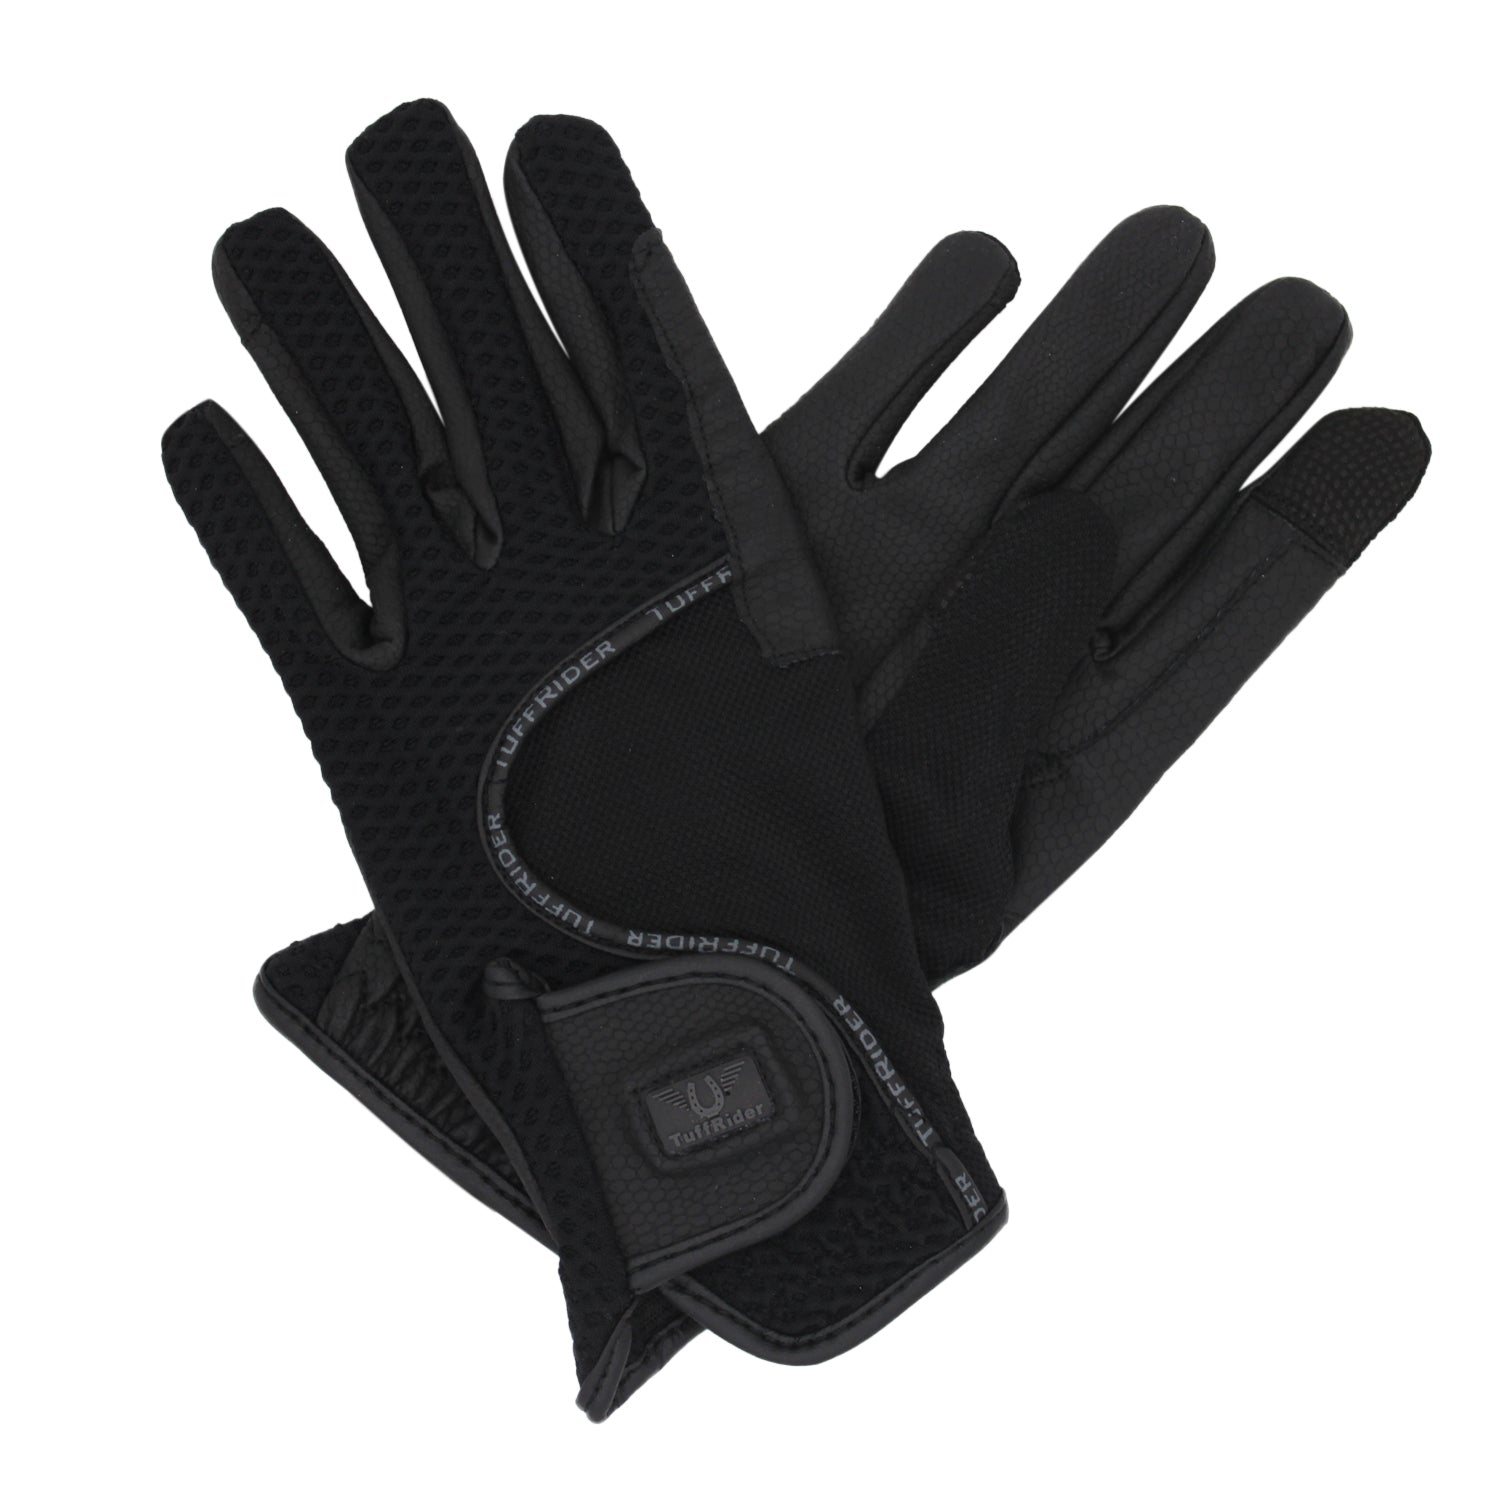 TuffRider Ladies Honeycomb Smart Riding Gloves_5715